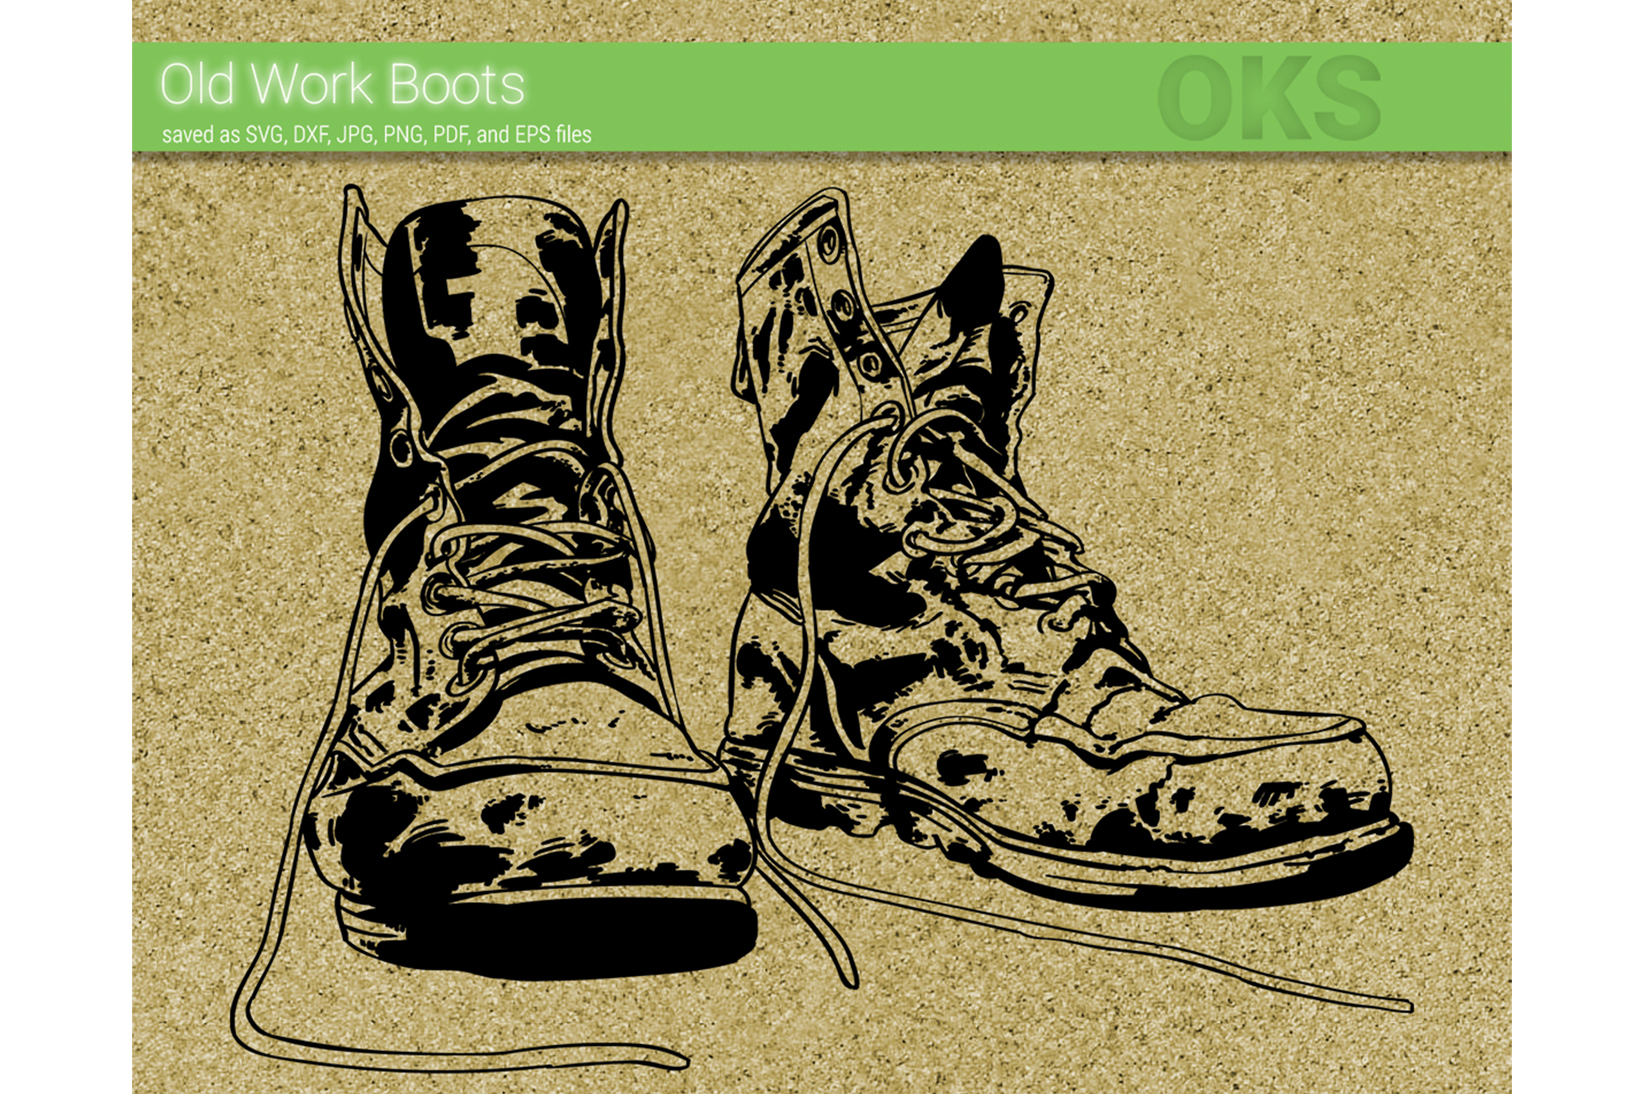 Download Free Old Work Boots Svg Vector Graphic By Crafteroks Creative Fabrica for Cricut Explore, Silhouette and other cutting machines.